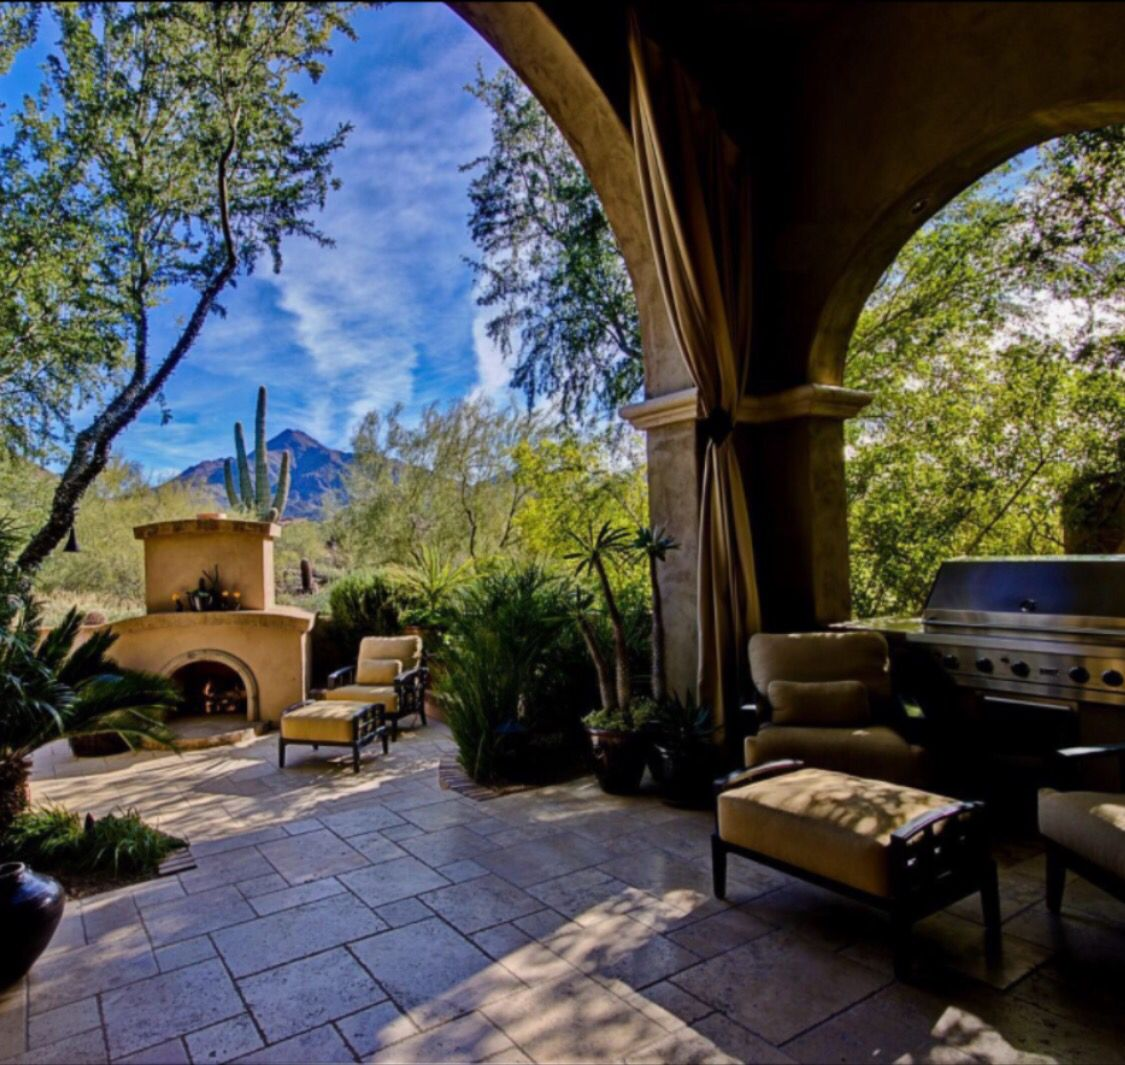 dc ranch scottsdale homes for sale backyards that amaze